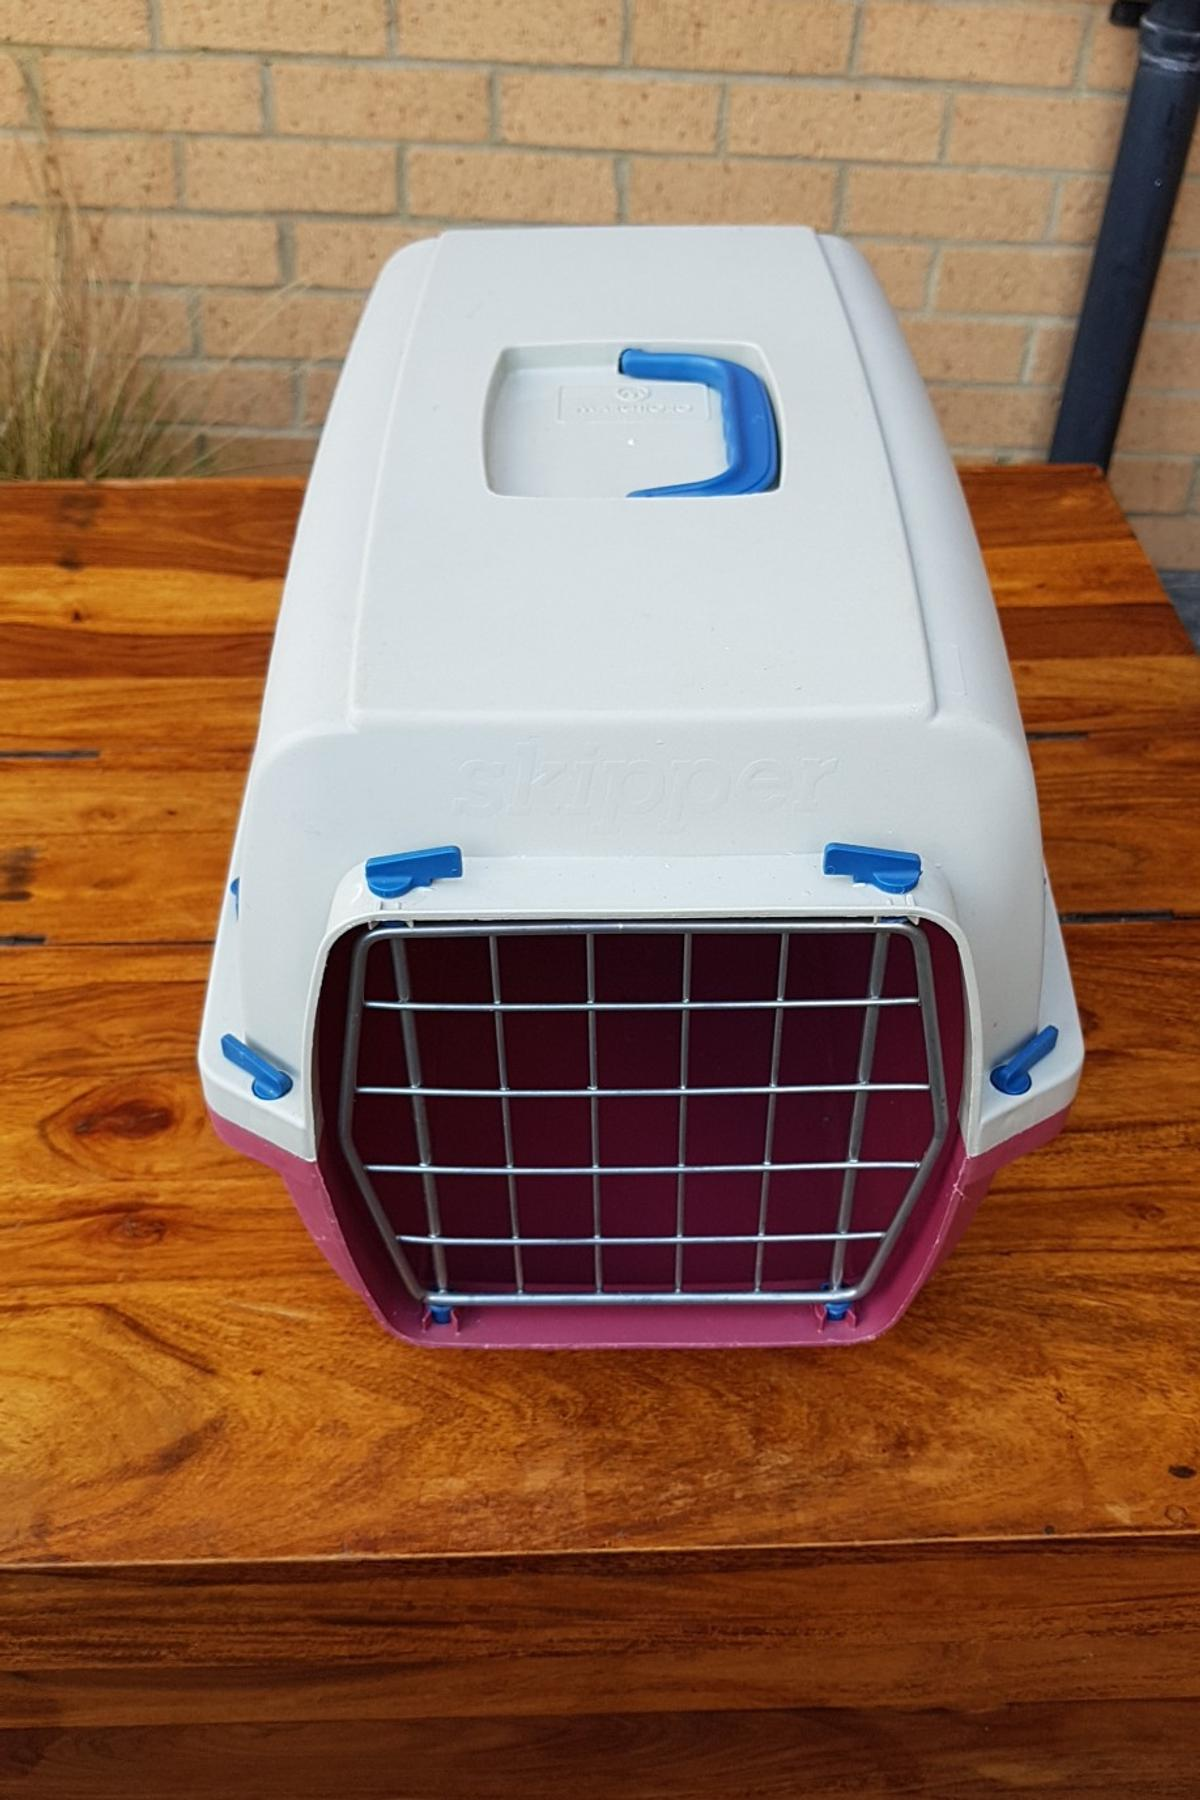 5536555d94 Marchioro Skipper Cat Carrier in RG5 Woodley for £7.50 for sale - Shpock